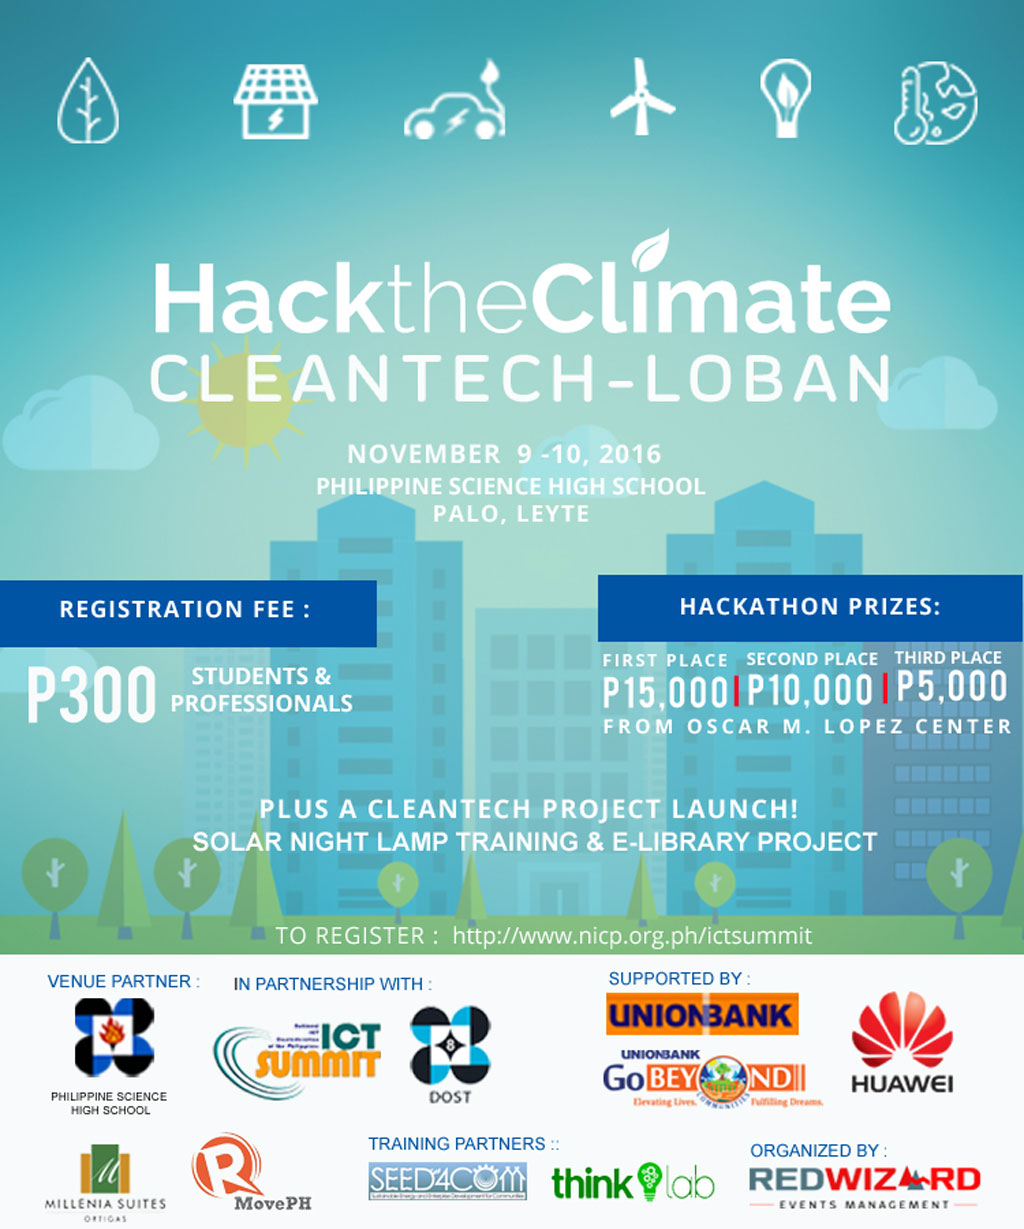 Hack the Climate Pushes for Clean Technology- Clean CleanTechloban